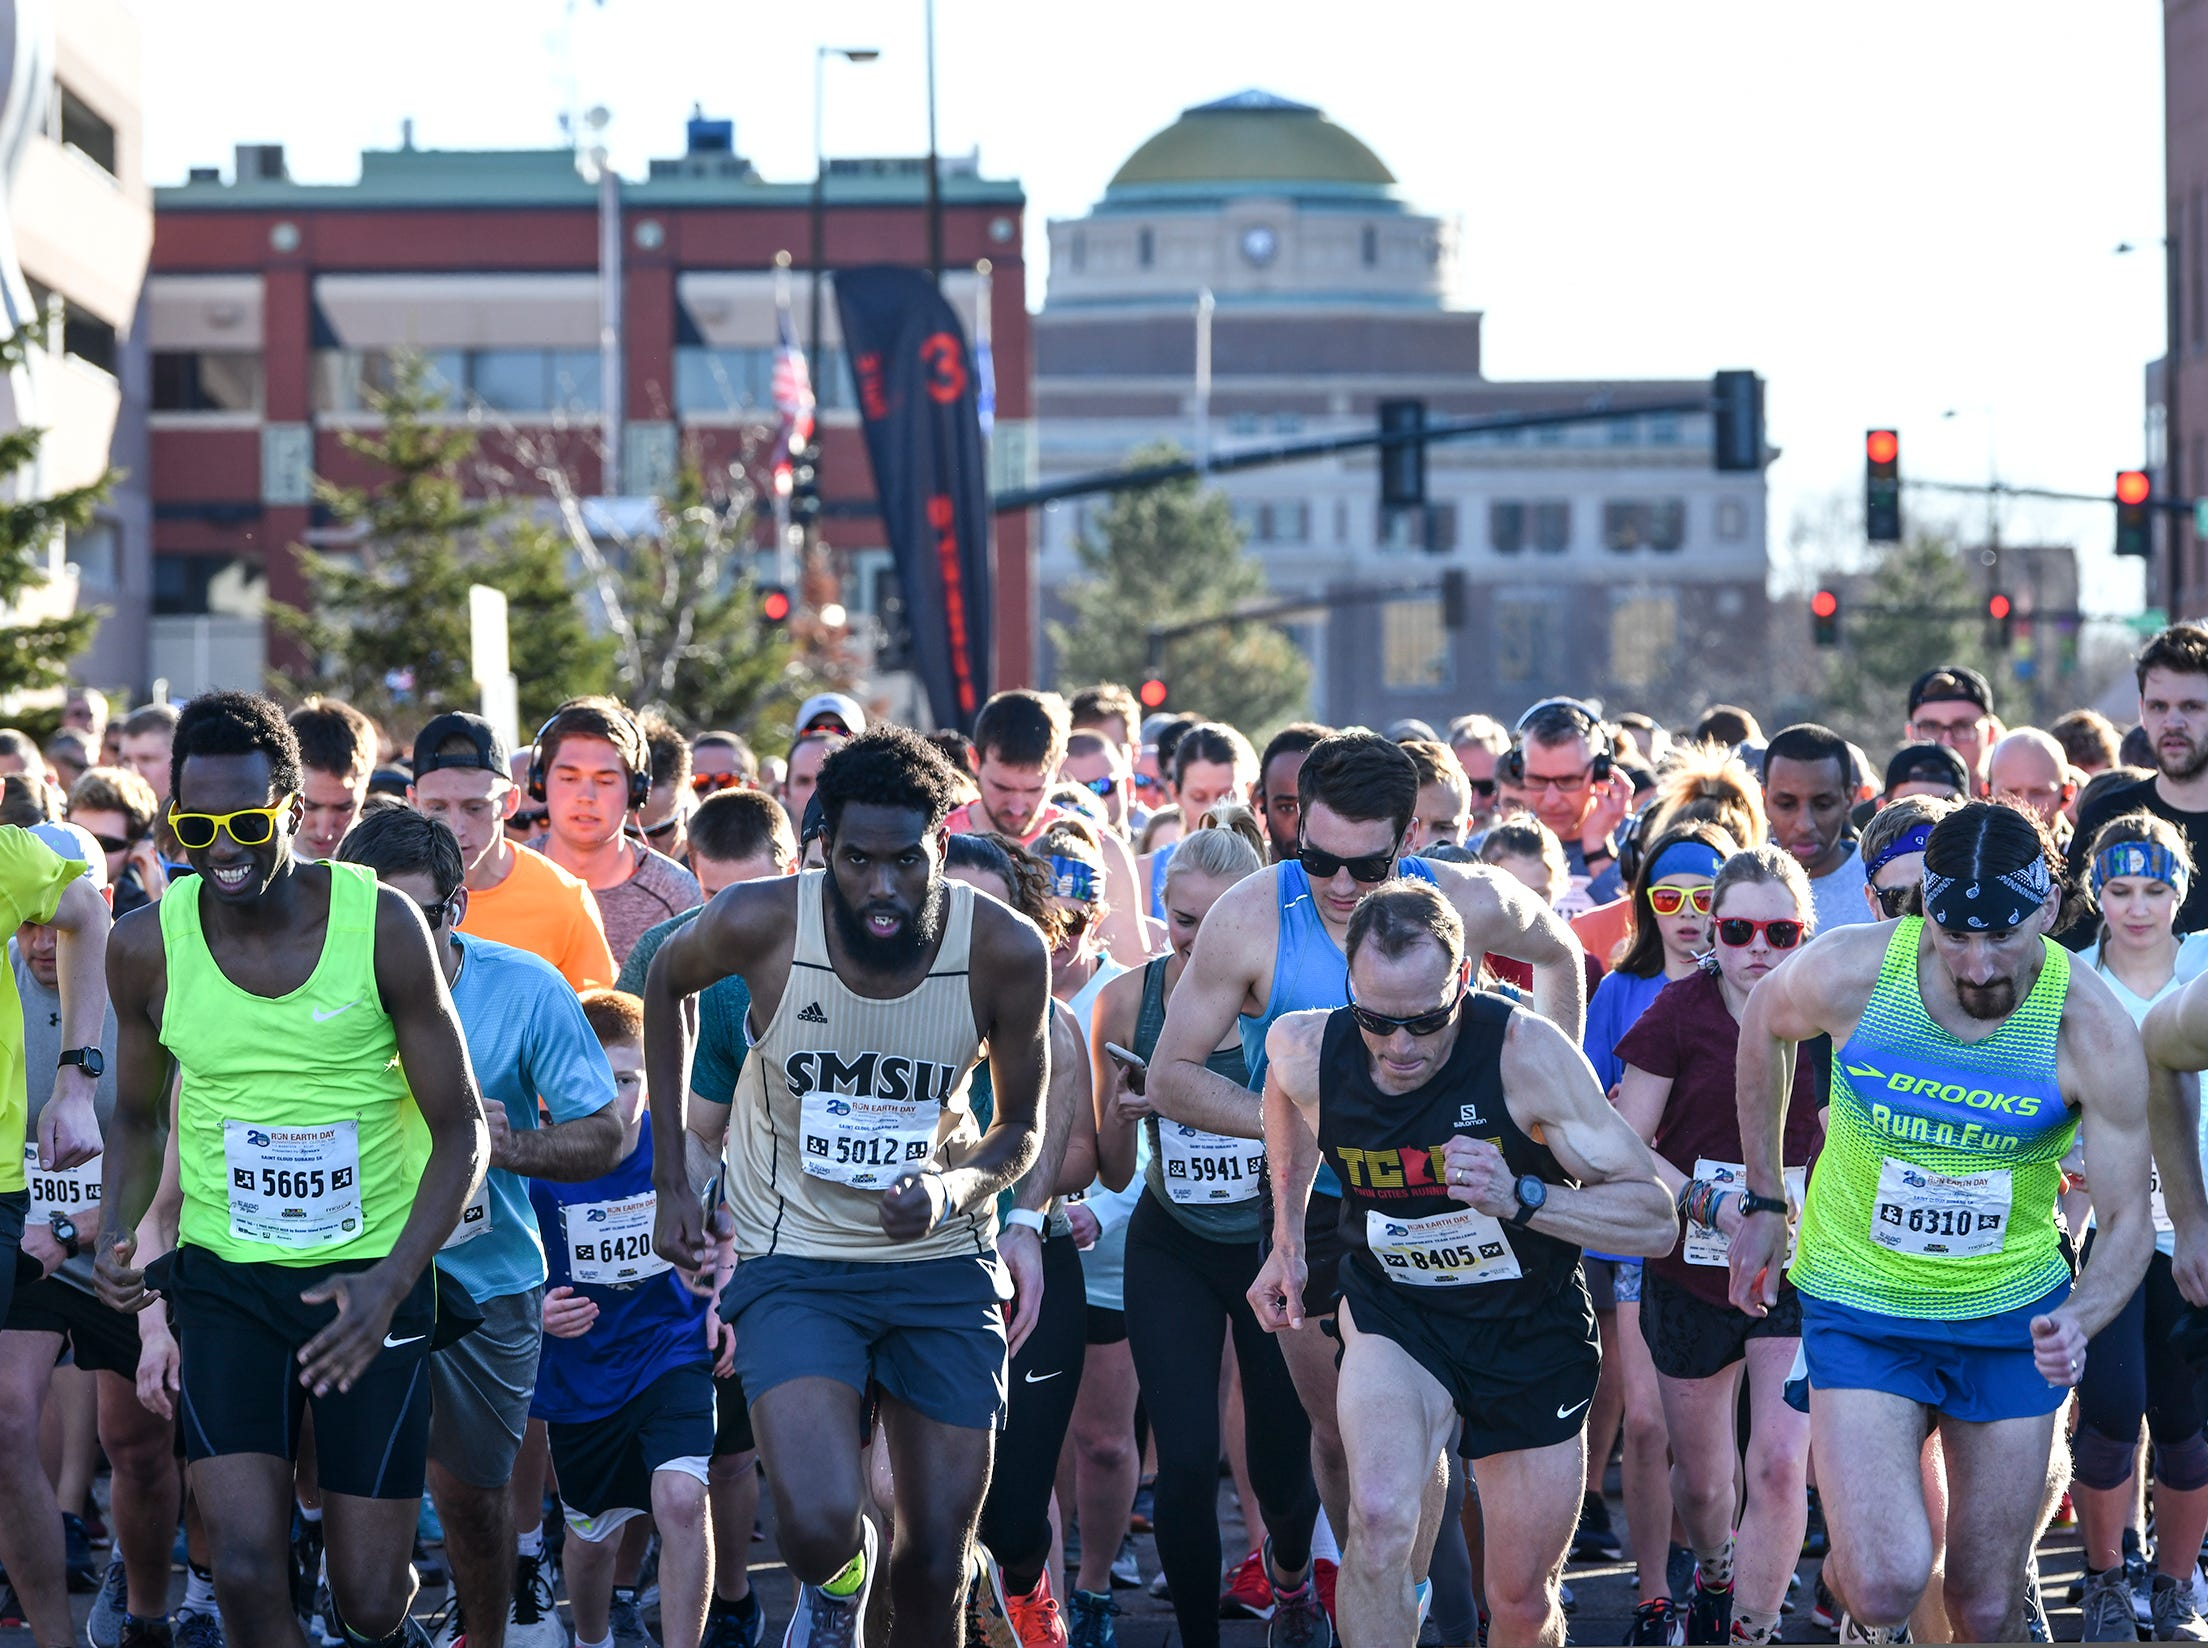 Runners in the first wave leave the starting line of the St. Cloud Subaru 5K run/walk Friday in downtown St. Cloud.